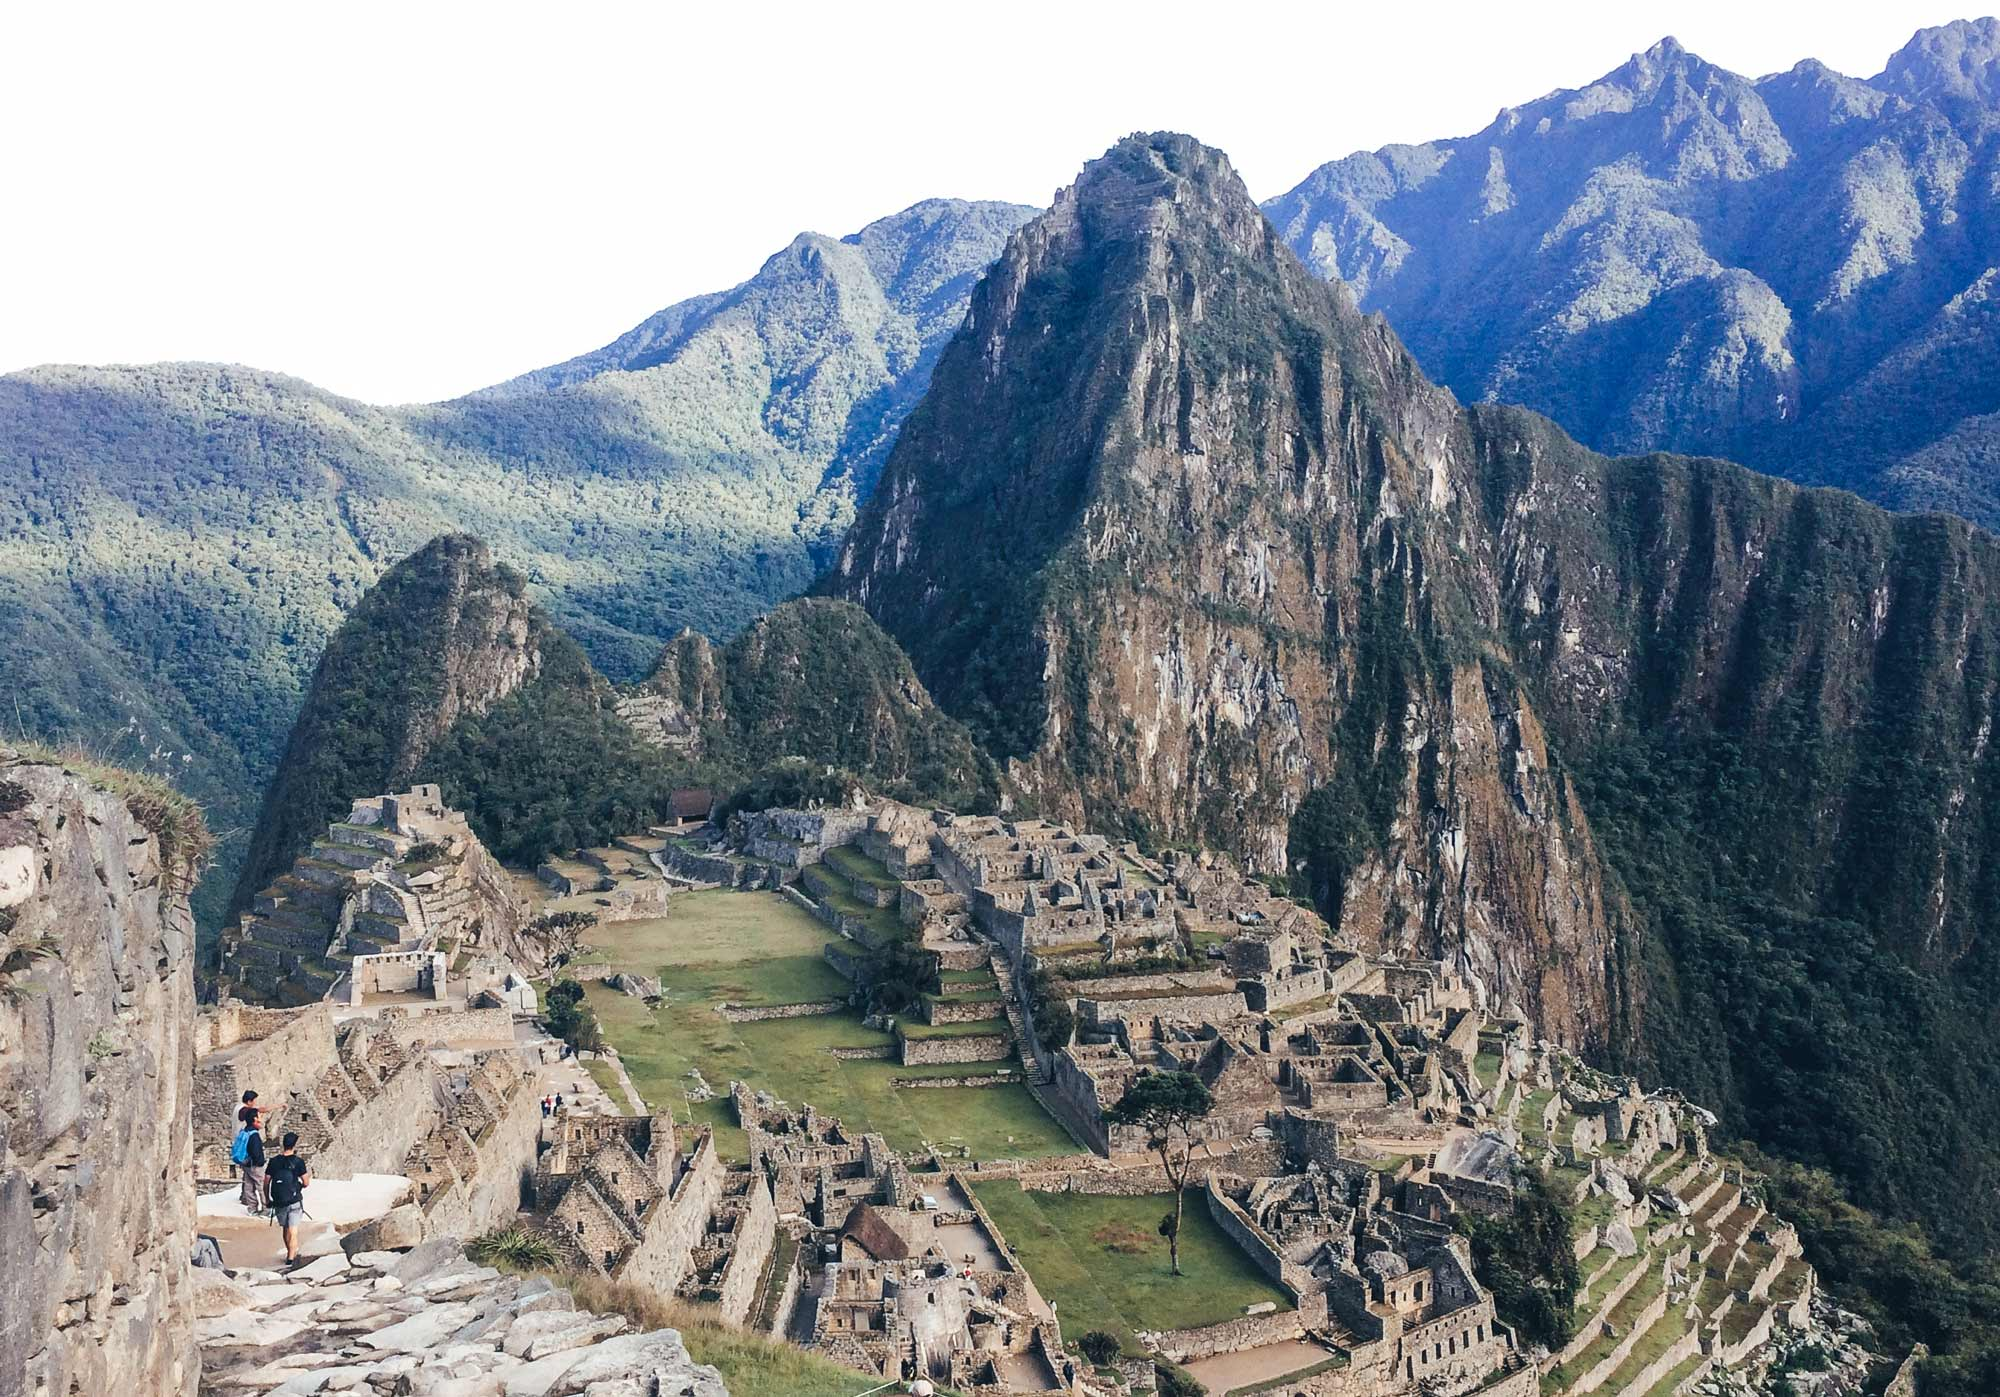 Trekking the Inca Trail to Machu Pichu. The view looking down onto the Incan city of Machu Pichu from the Sun Gate with the andes mountains behind